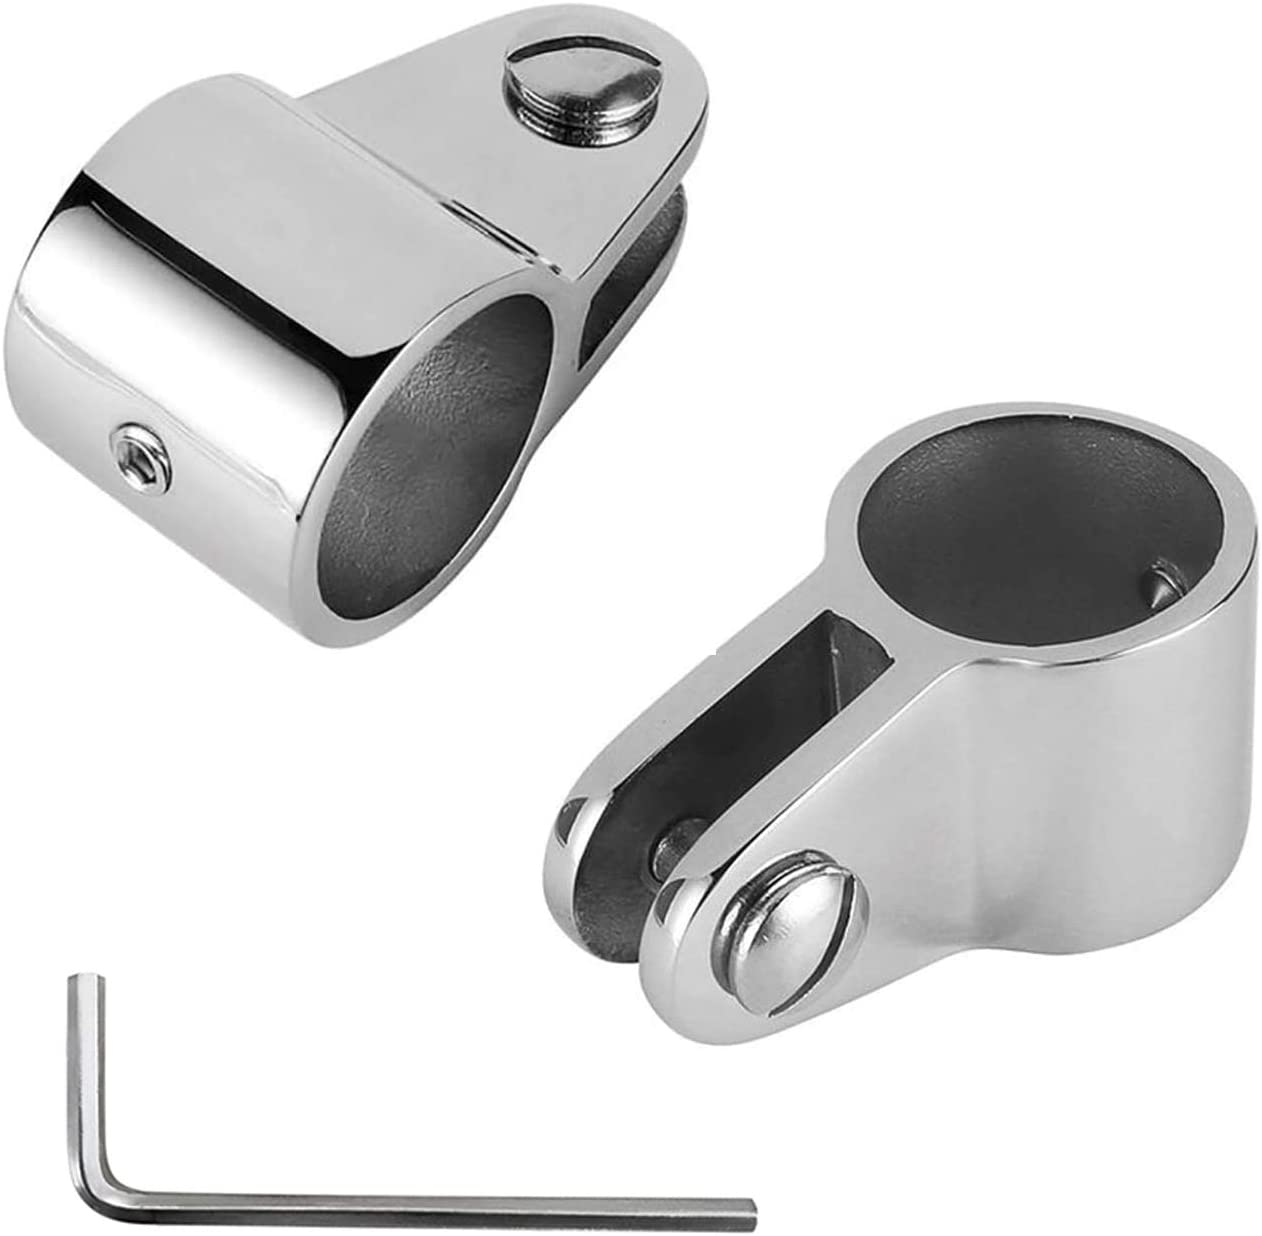 32.5mm Bimini Top Jaw Slide Stainless Steel 316 Marine Hardware Fitting 1-1//4 O.D SHENGHUI 2 PCS 1-1//4 Inch Round Tube with L Shape Hex Key